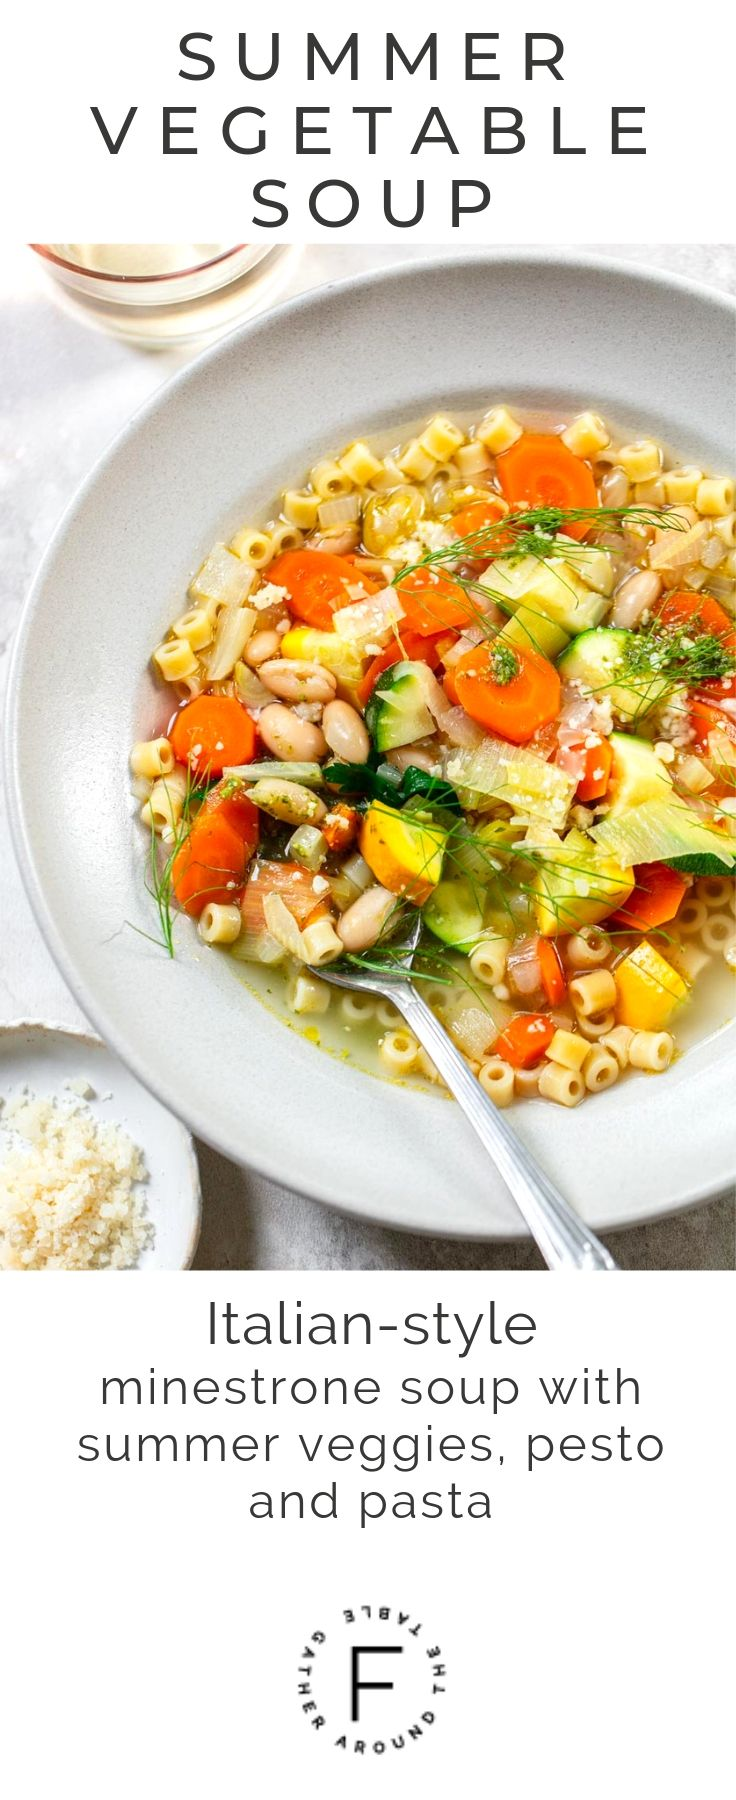 Summer Minestrone Soup